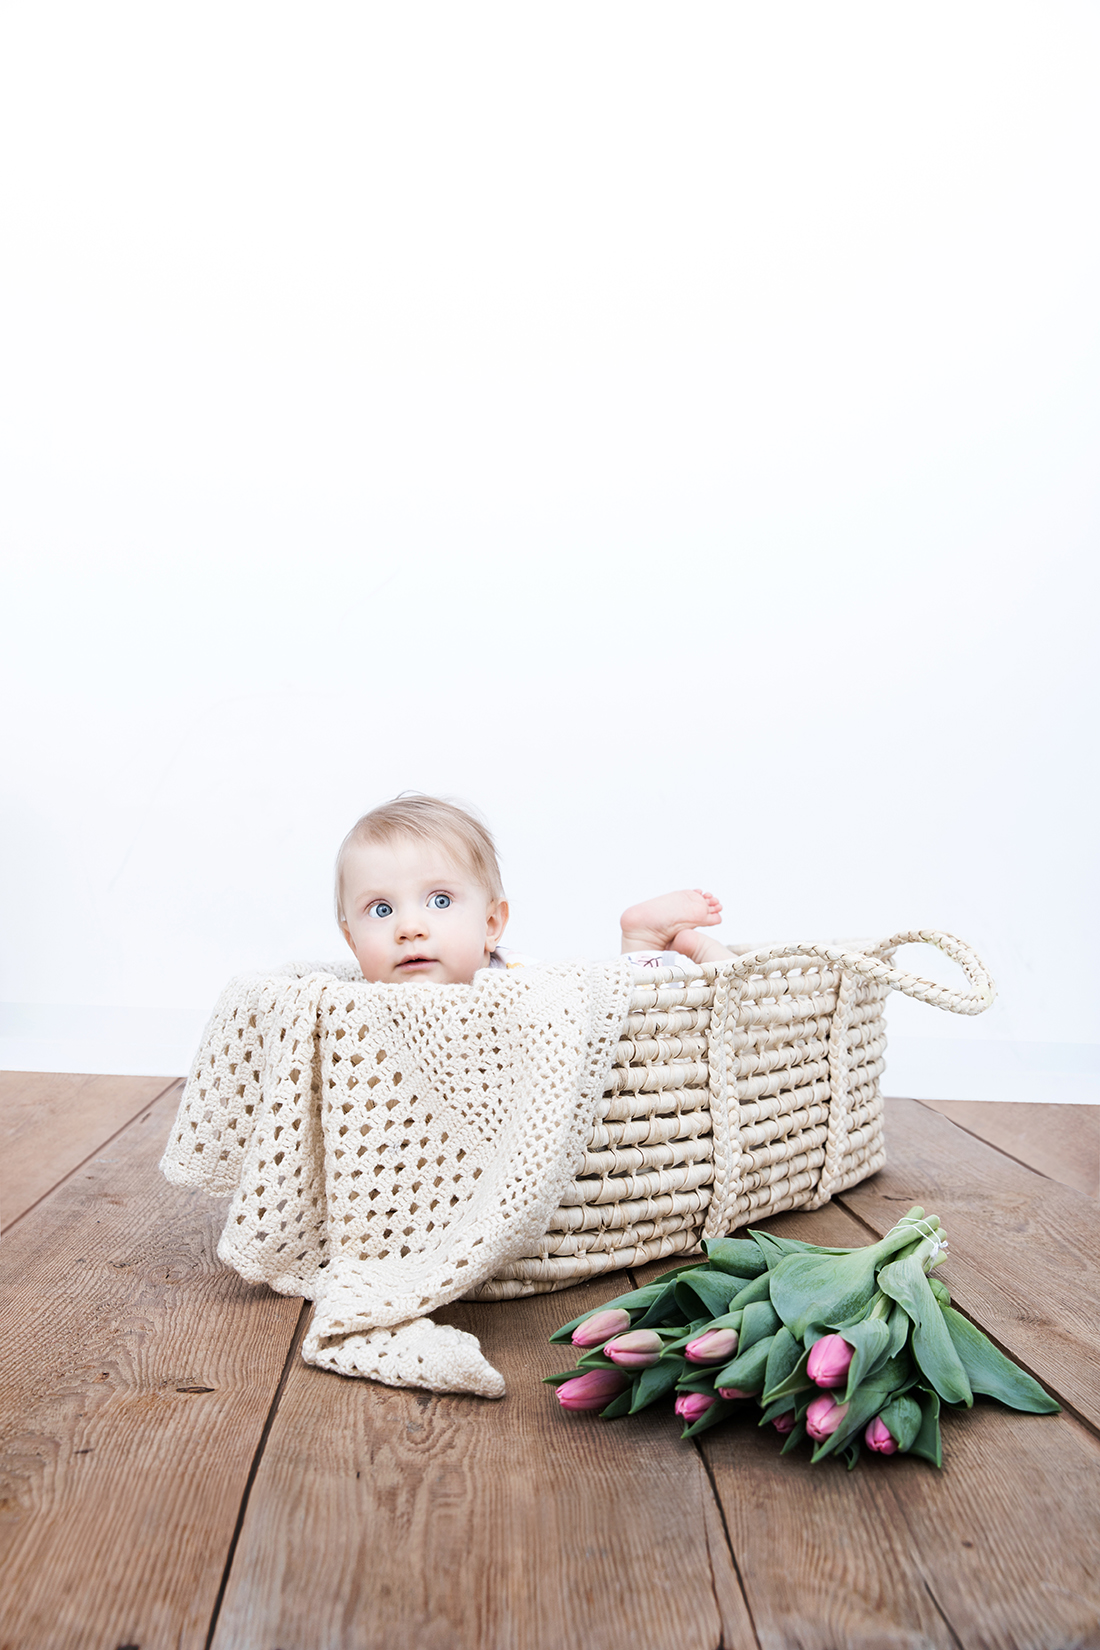 Babyportrait in Weidenkorb © Miriam Ellerbrake/ Little Monkey Fotografie 2015